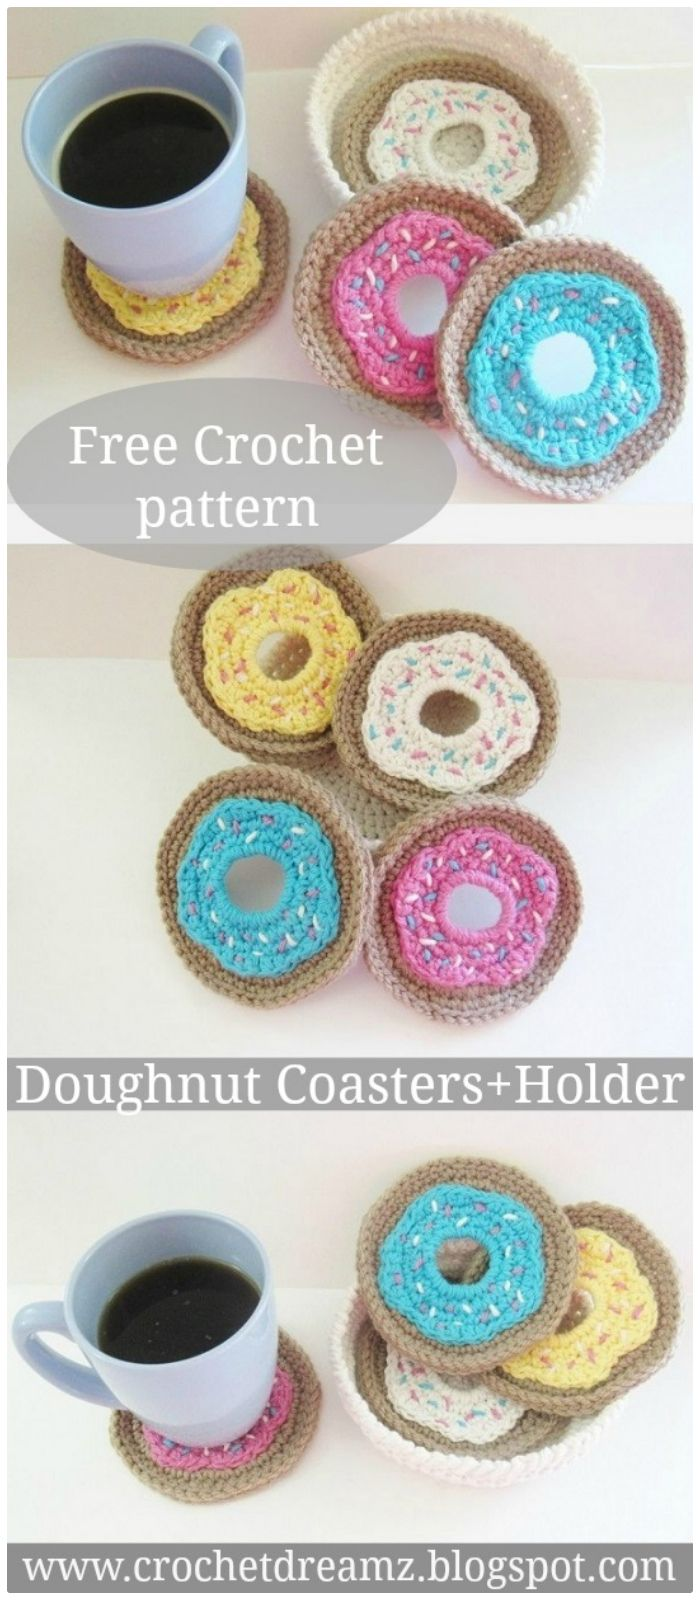 DIY Crochet Doughnut Coasters - free crochet coaster patterns | Free Crochet Coaster Patterns